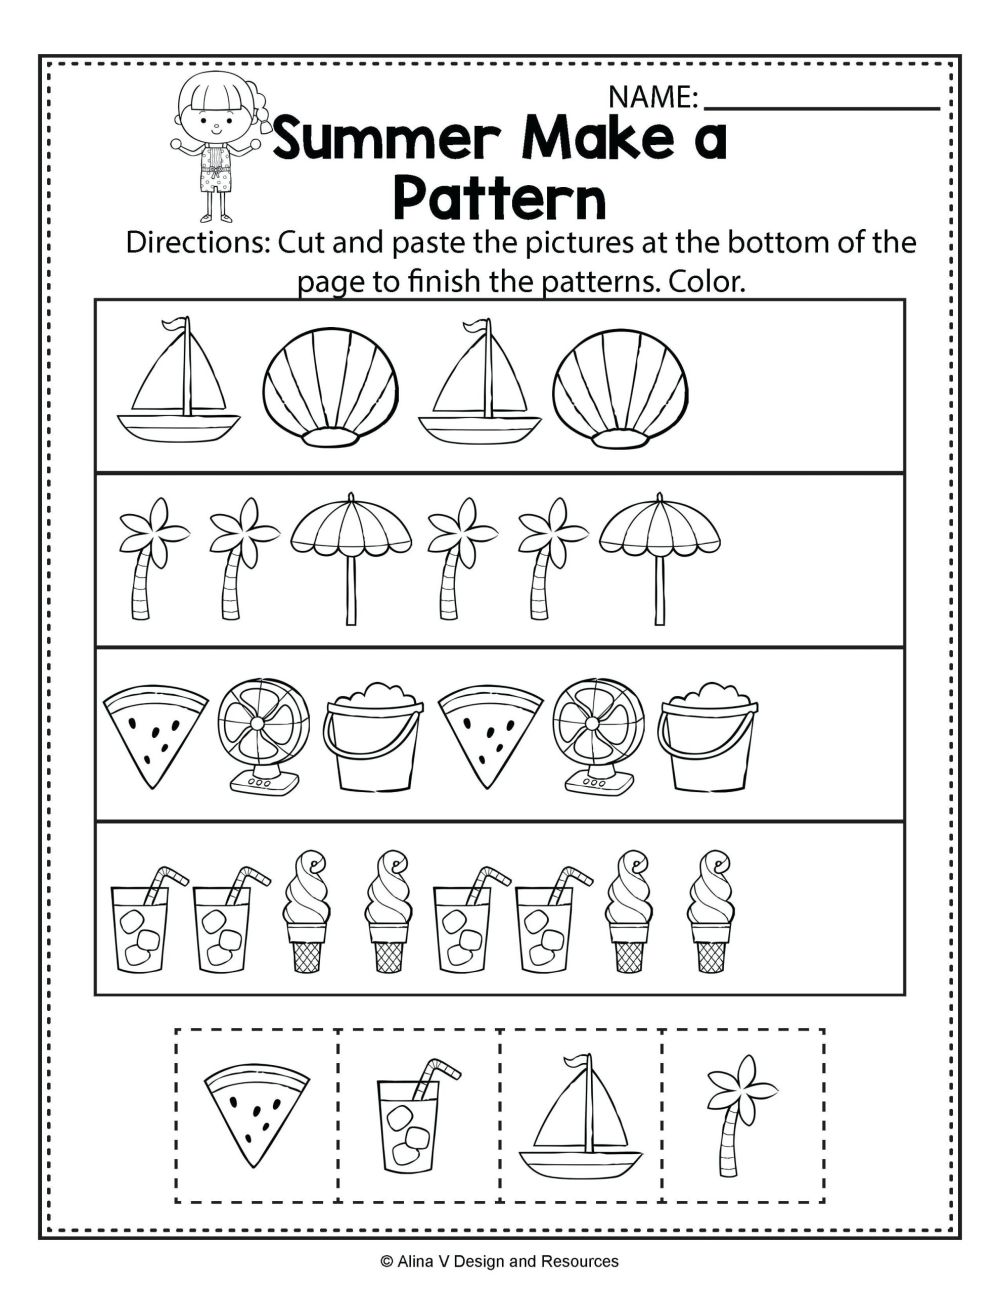 medium resolution of 4 Free Math Worksheets Third Grade 3 Subtraction Subtract 1 Digit From 2  Digit Missing Number - apocalomegaproductions.com